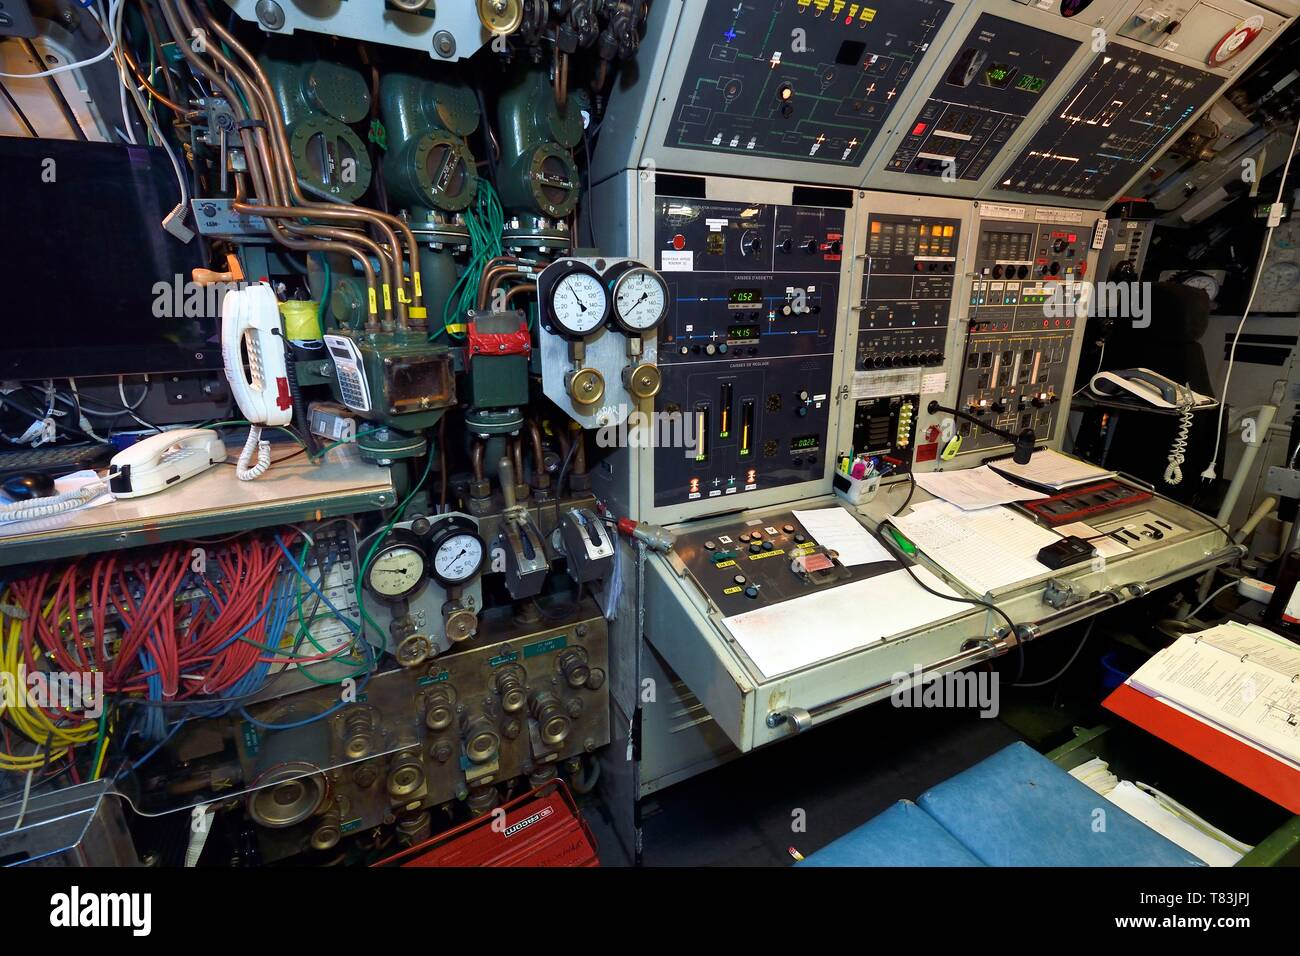 France, Var, Toulon, the naval base (Arsenal), nuclear attack submarine (SNA) Rubis type, central navigation and operation room - Stock Image